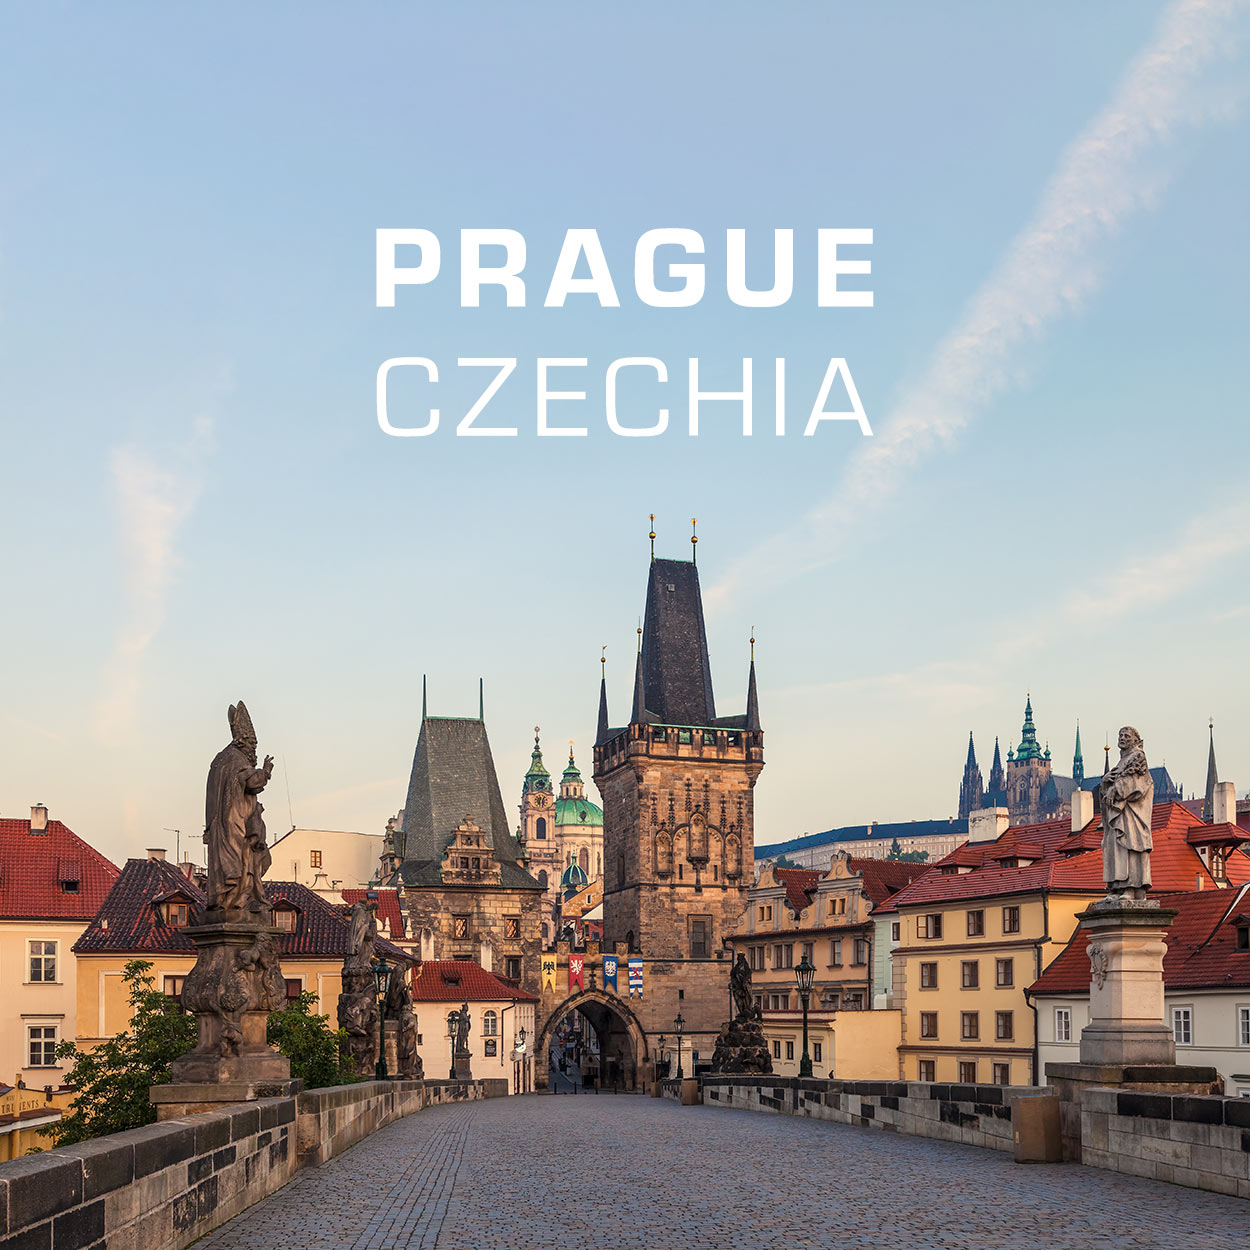 Pargue, Czechia - Charles Bridge at Sunrise